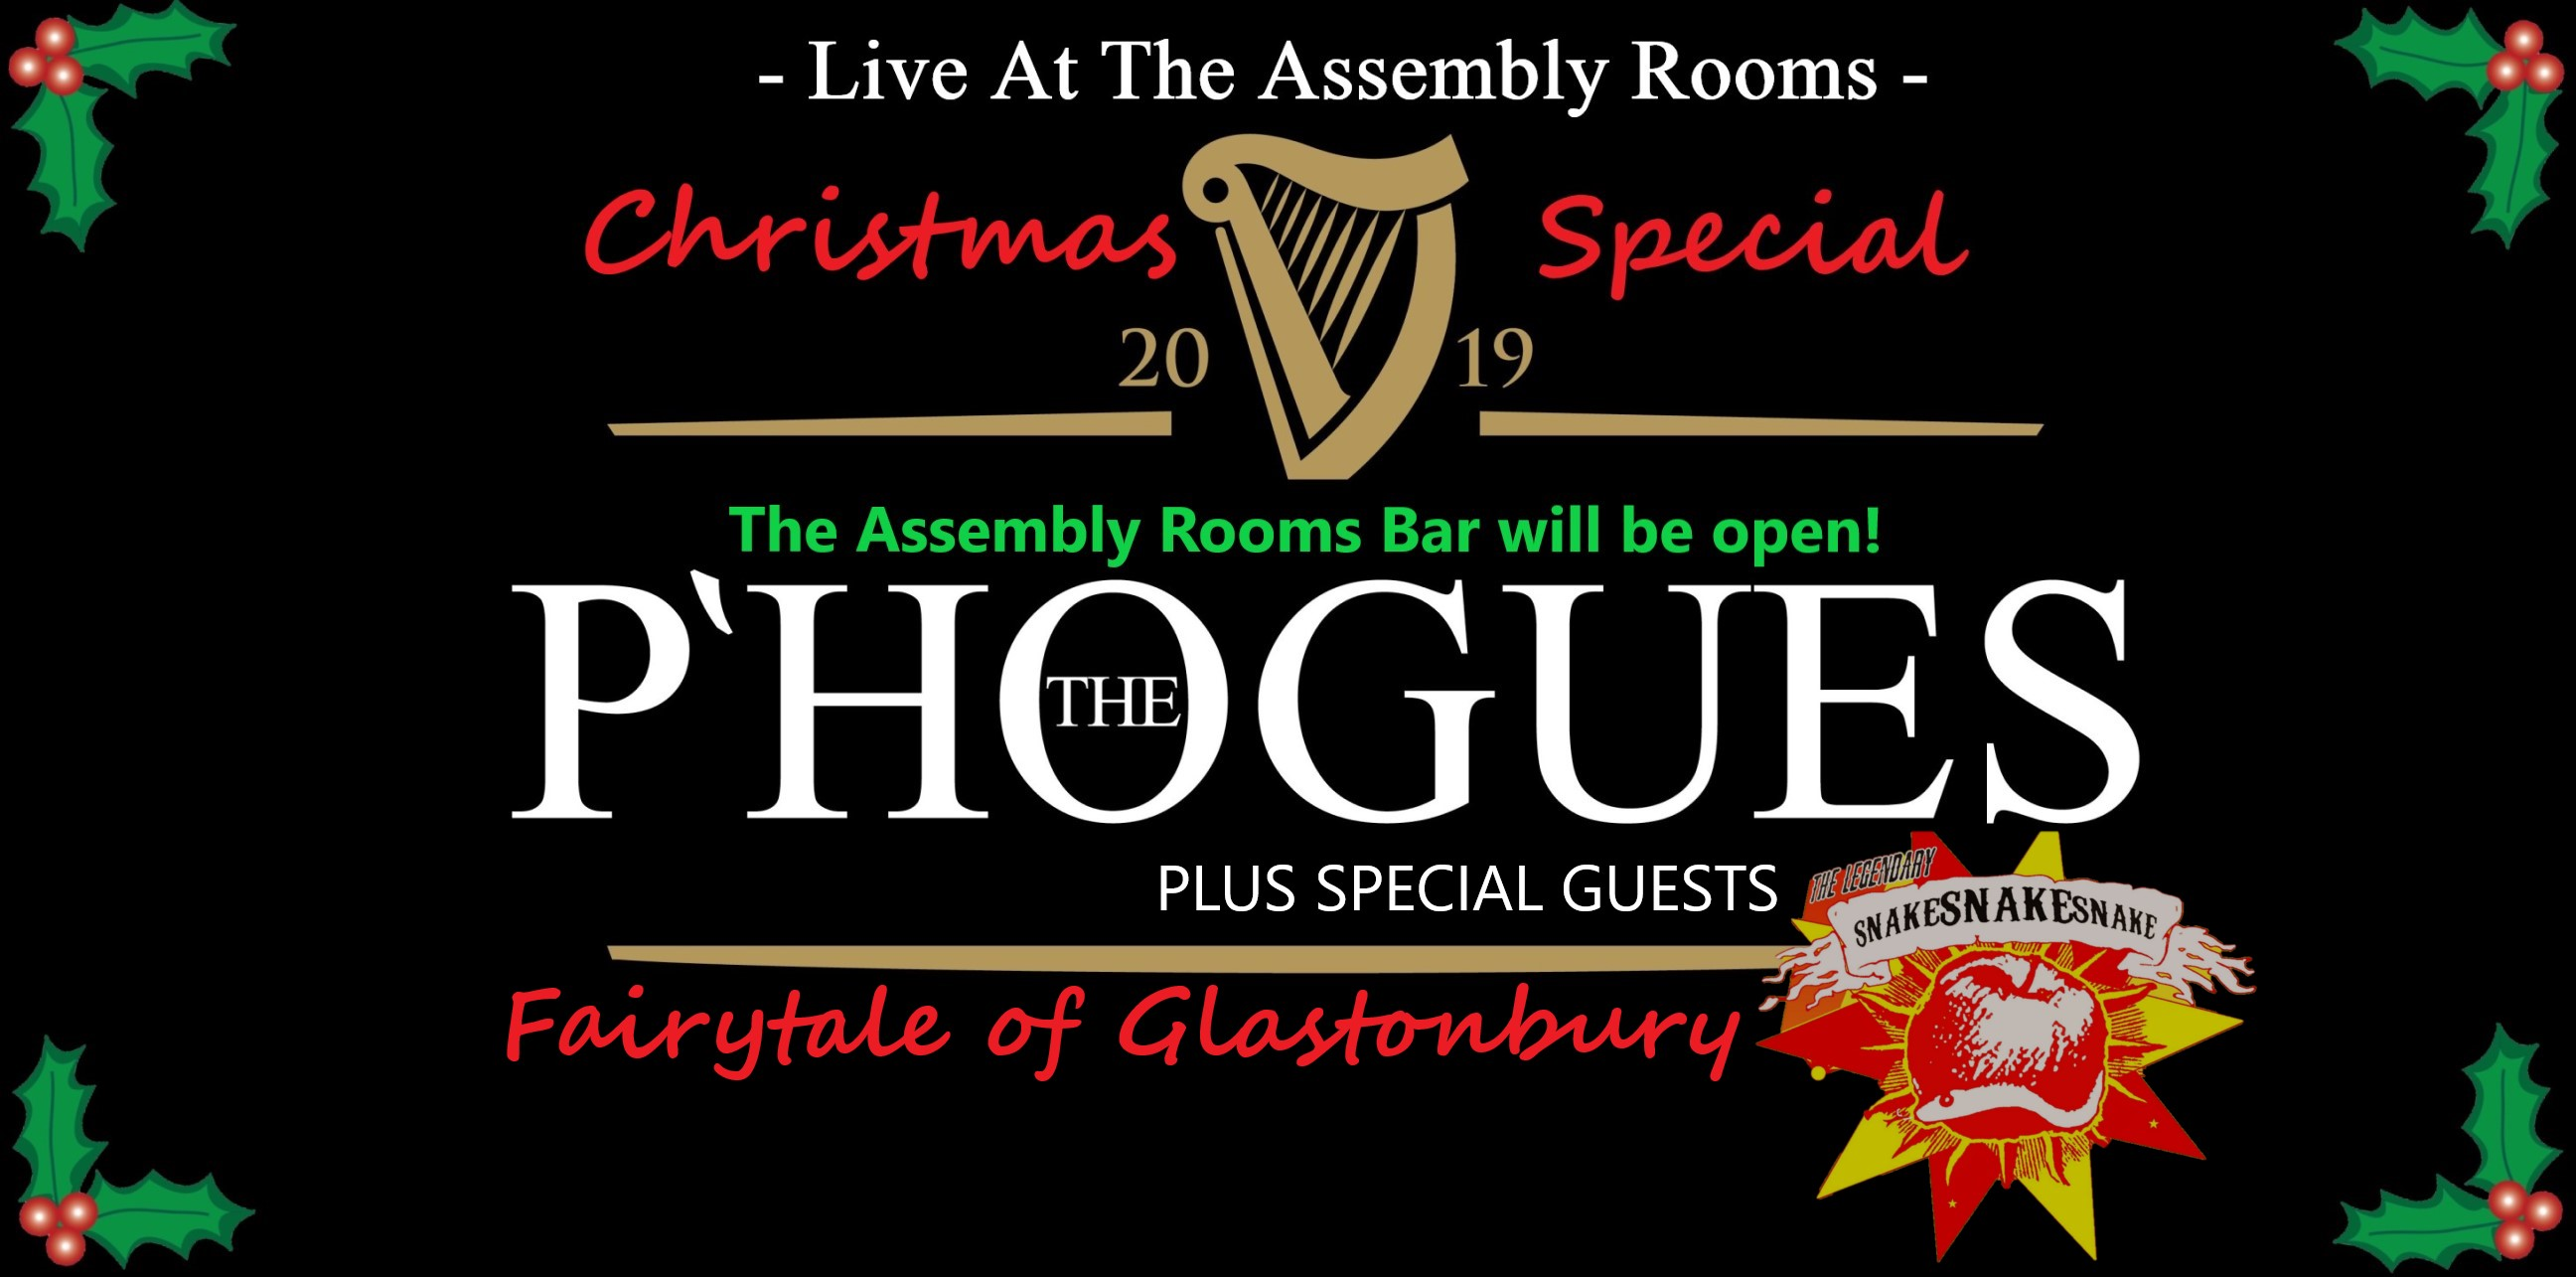 Fairytale of Glastonbury - With THE P'HOGUES - A Christmas Special + Special Guests: The Legendary snakeSNAKEsnake